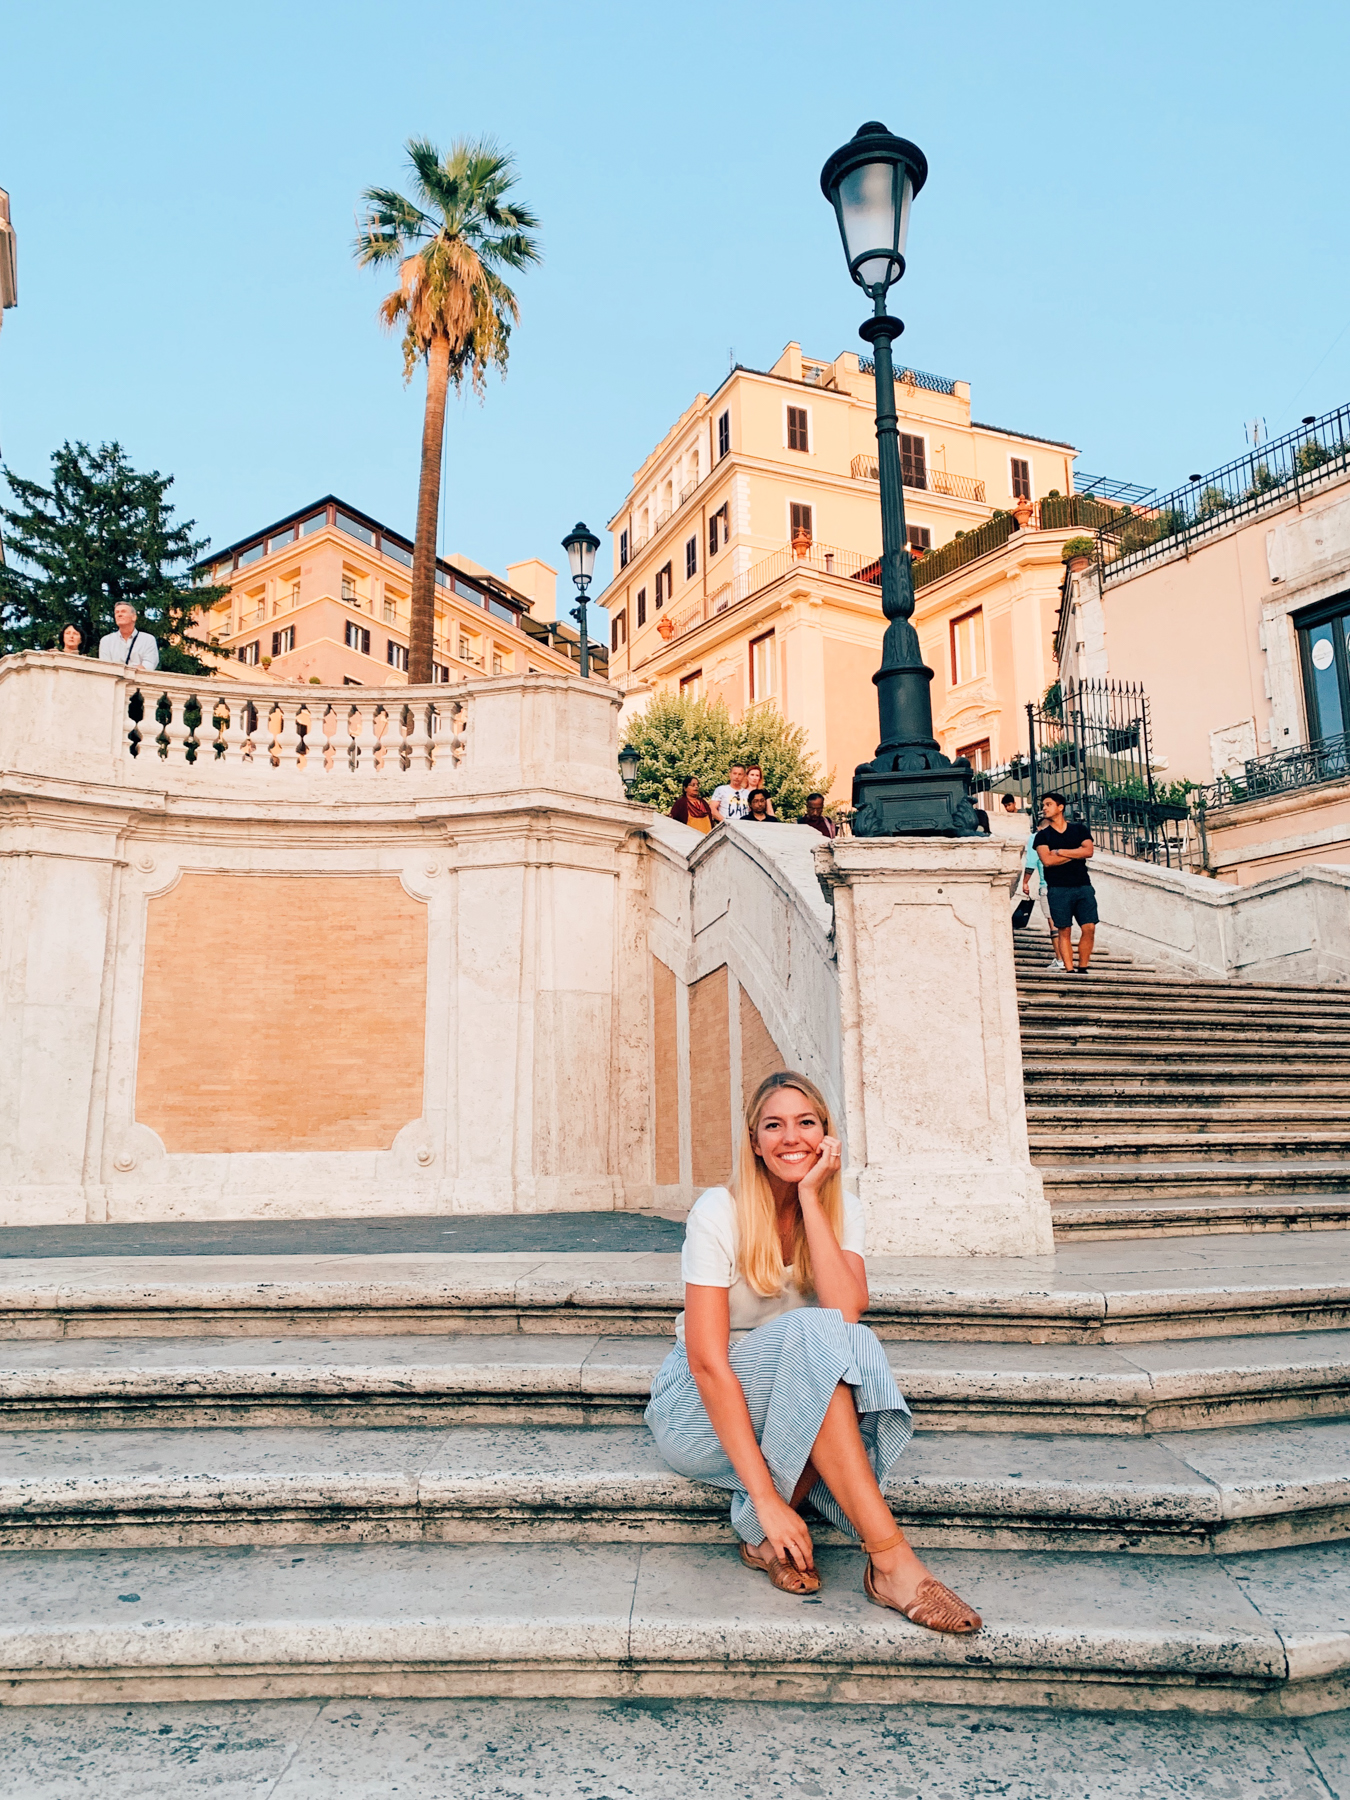 Ending the day at the Spanish Steps.